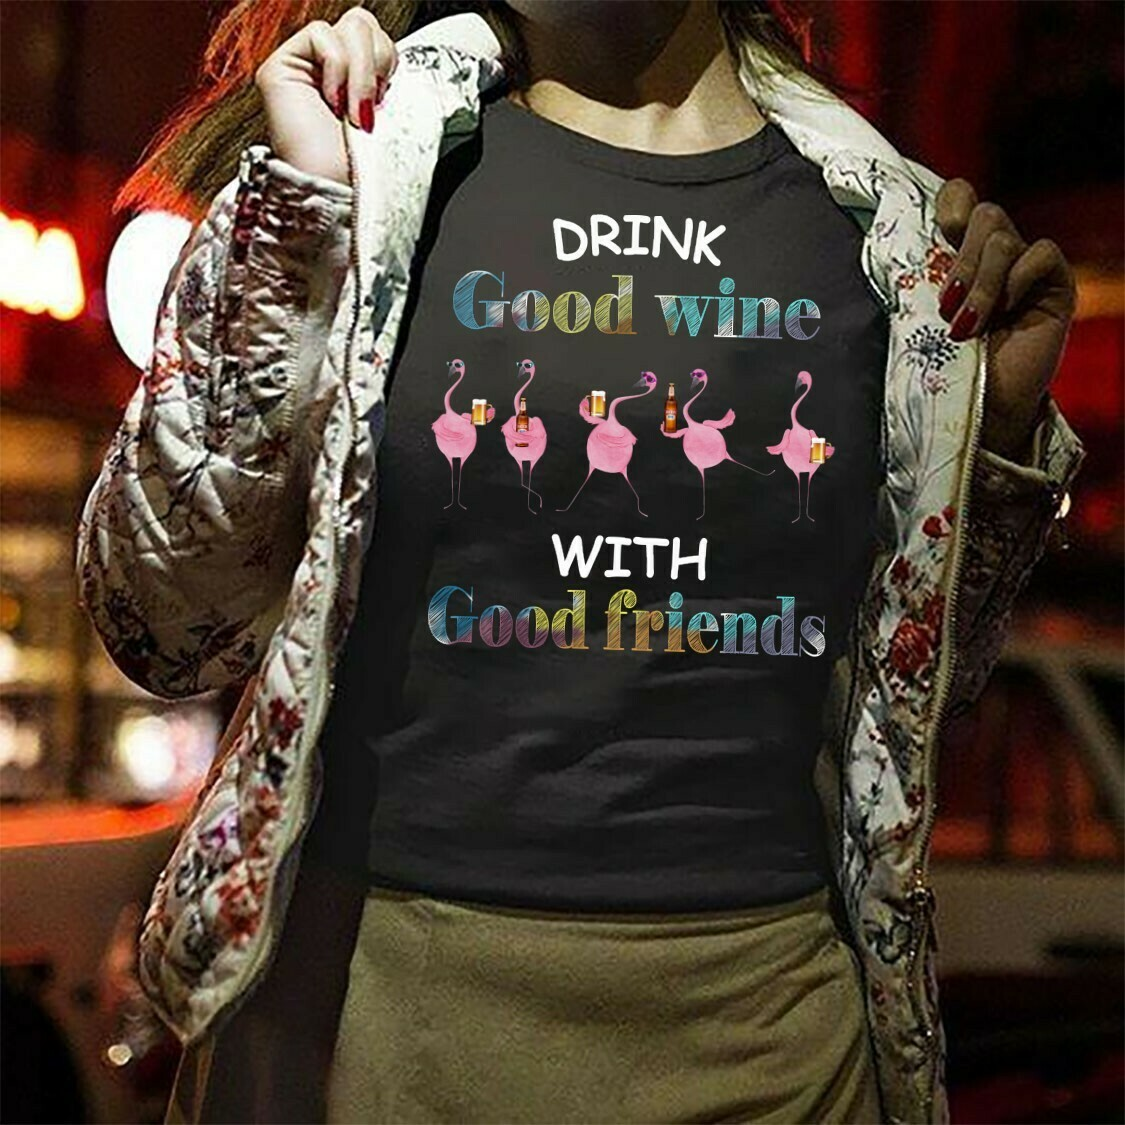 Drink Good Wine With Good Friends Funny Flamingo Beer Party Vacation Gift For Friends Team Group Camping Girls T Shirt Long Sleeve Sweatshirt Hoodie Jolly Family Gifts